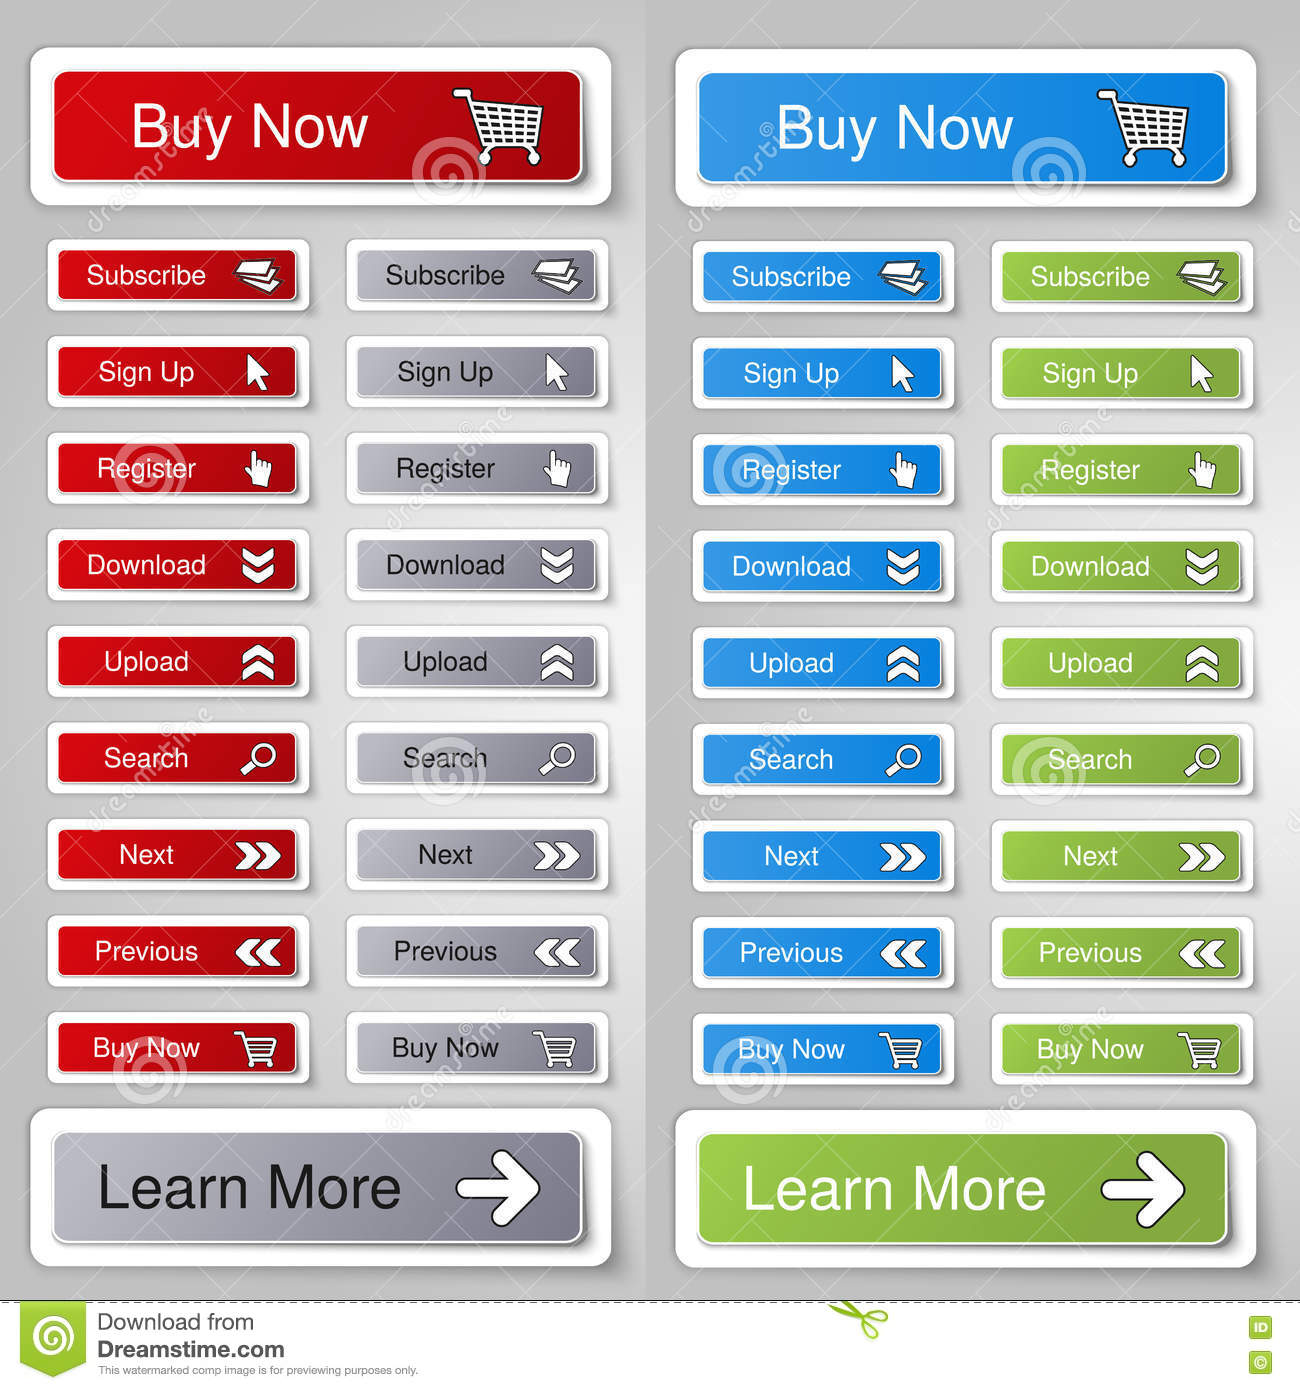 Buy now buttons easy digital downloads.